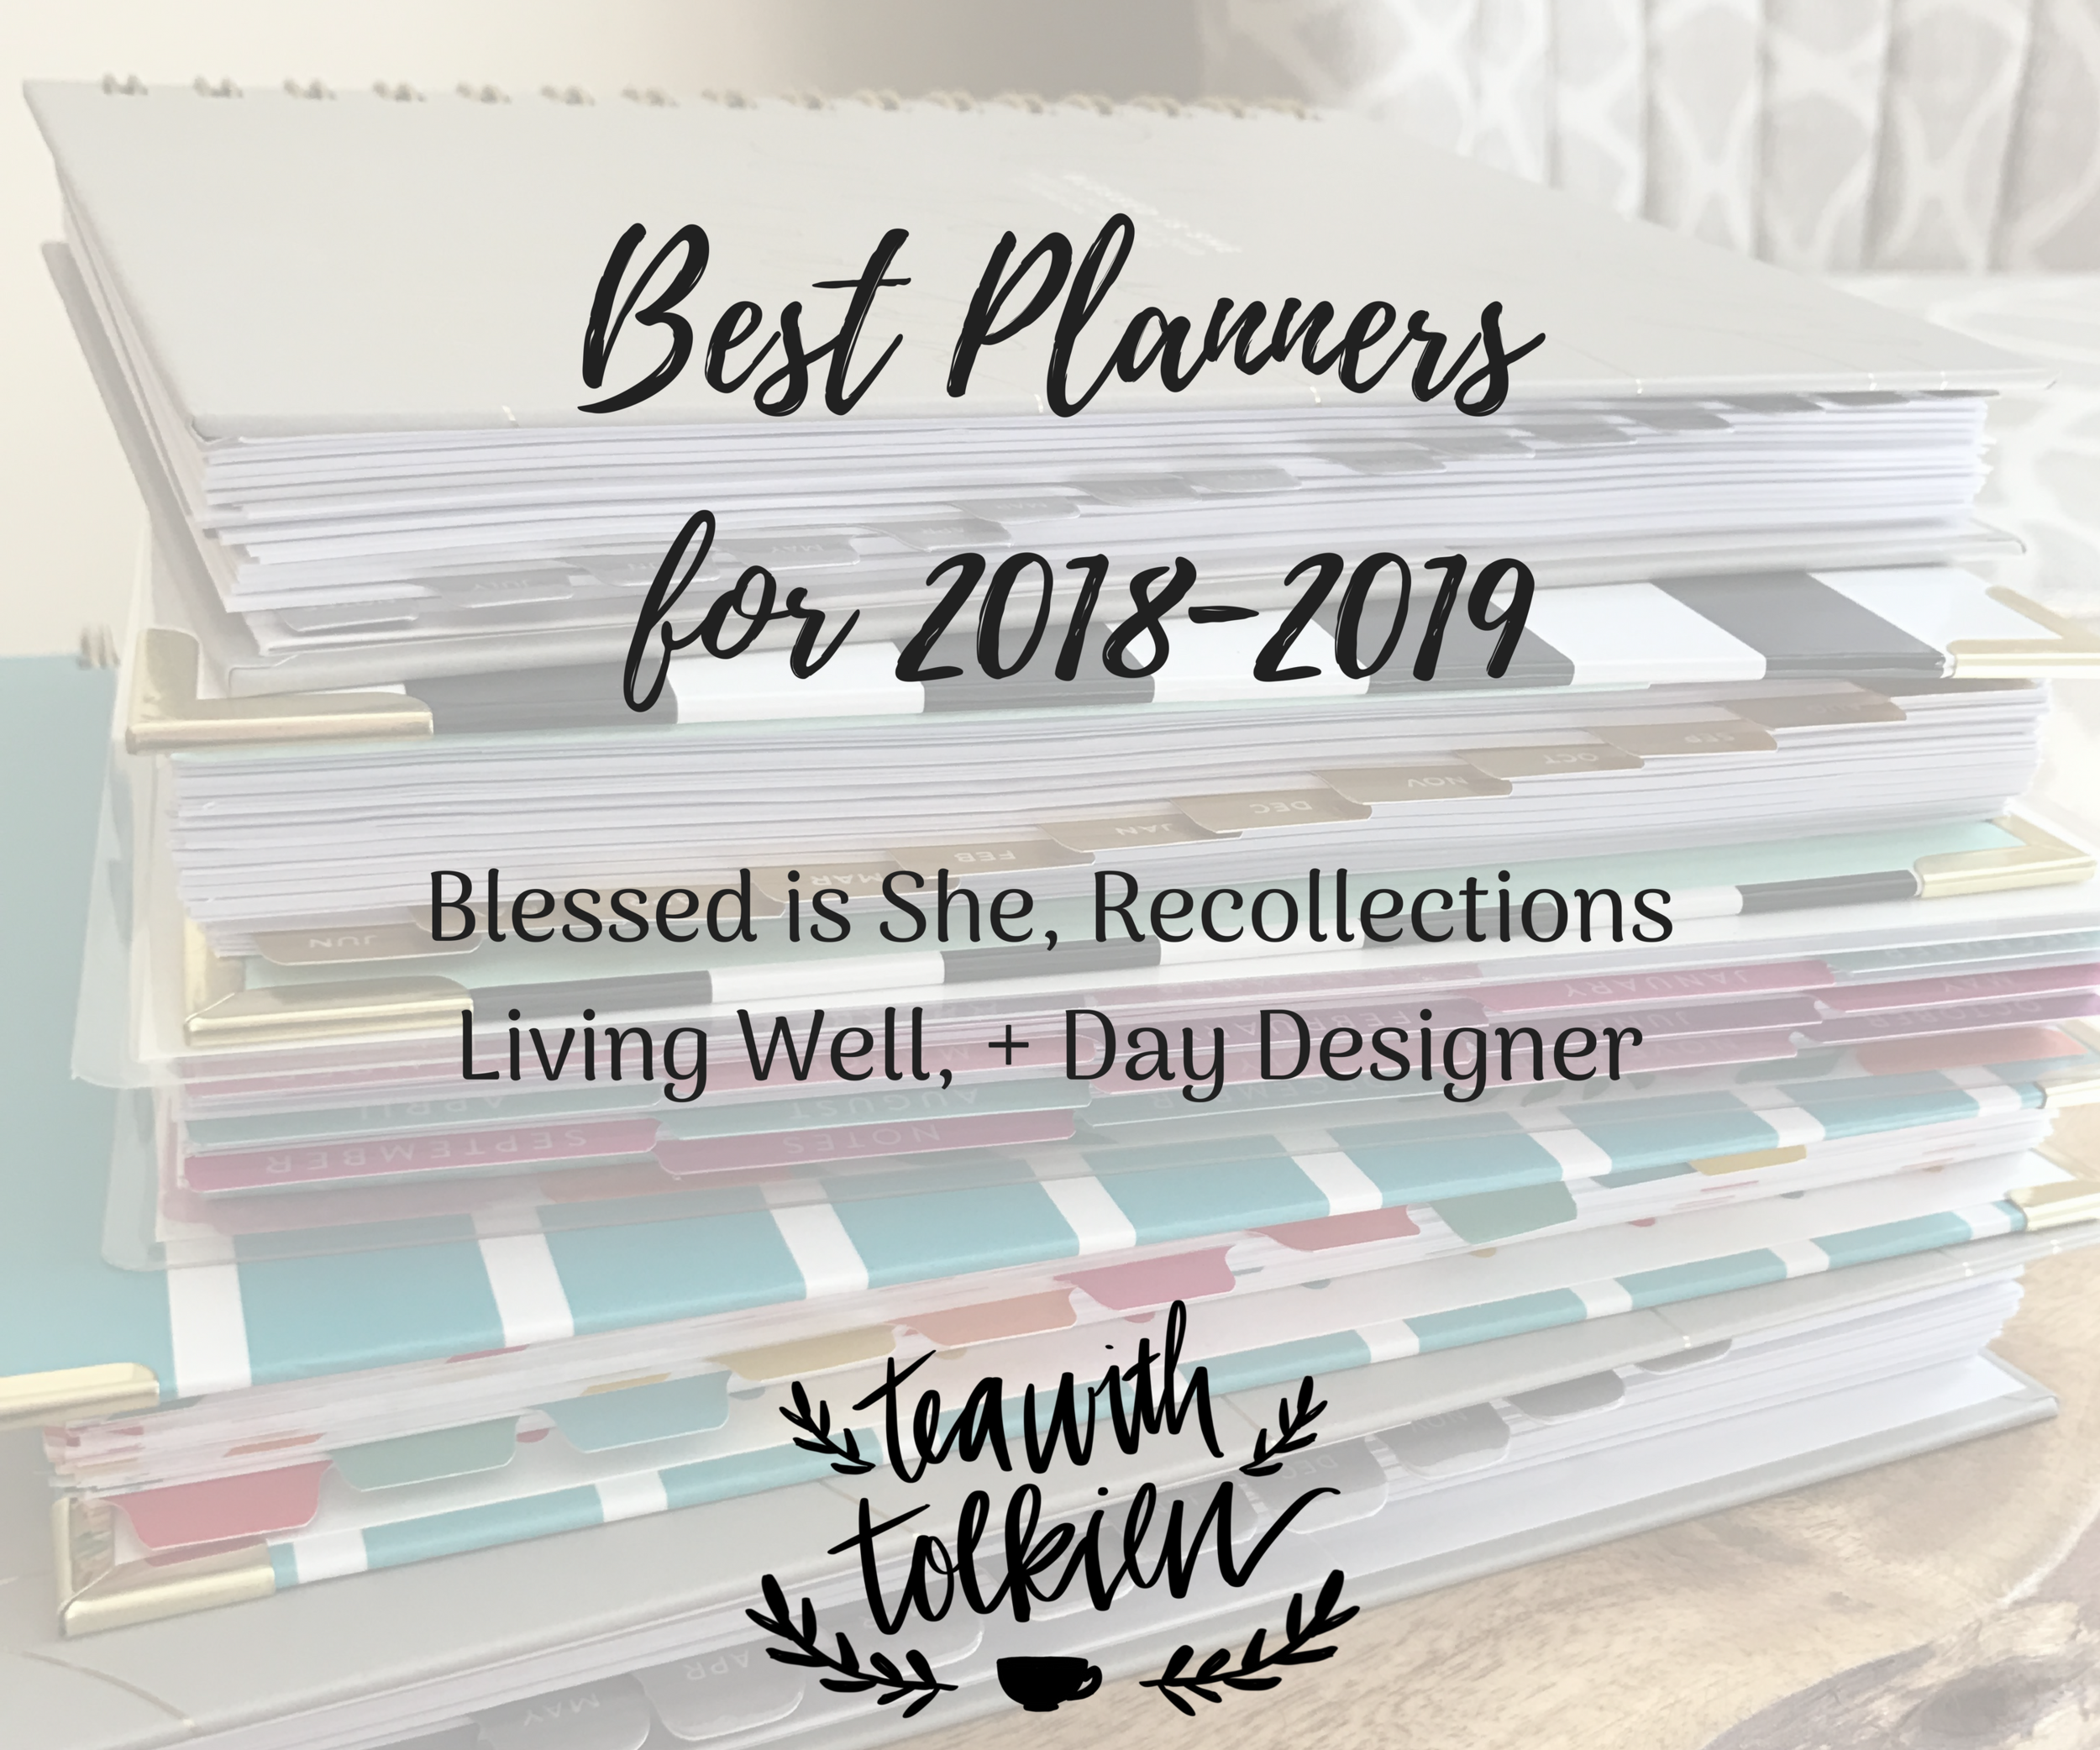 image regarding Day Designer Planners identified as The Easiest Planners for 2018-2019 (Tea with Tolkien Model